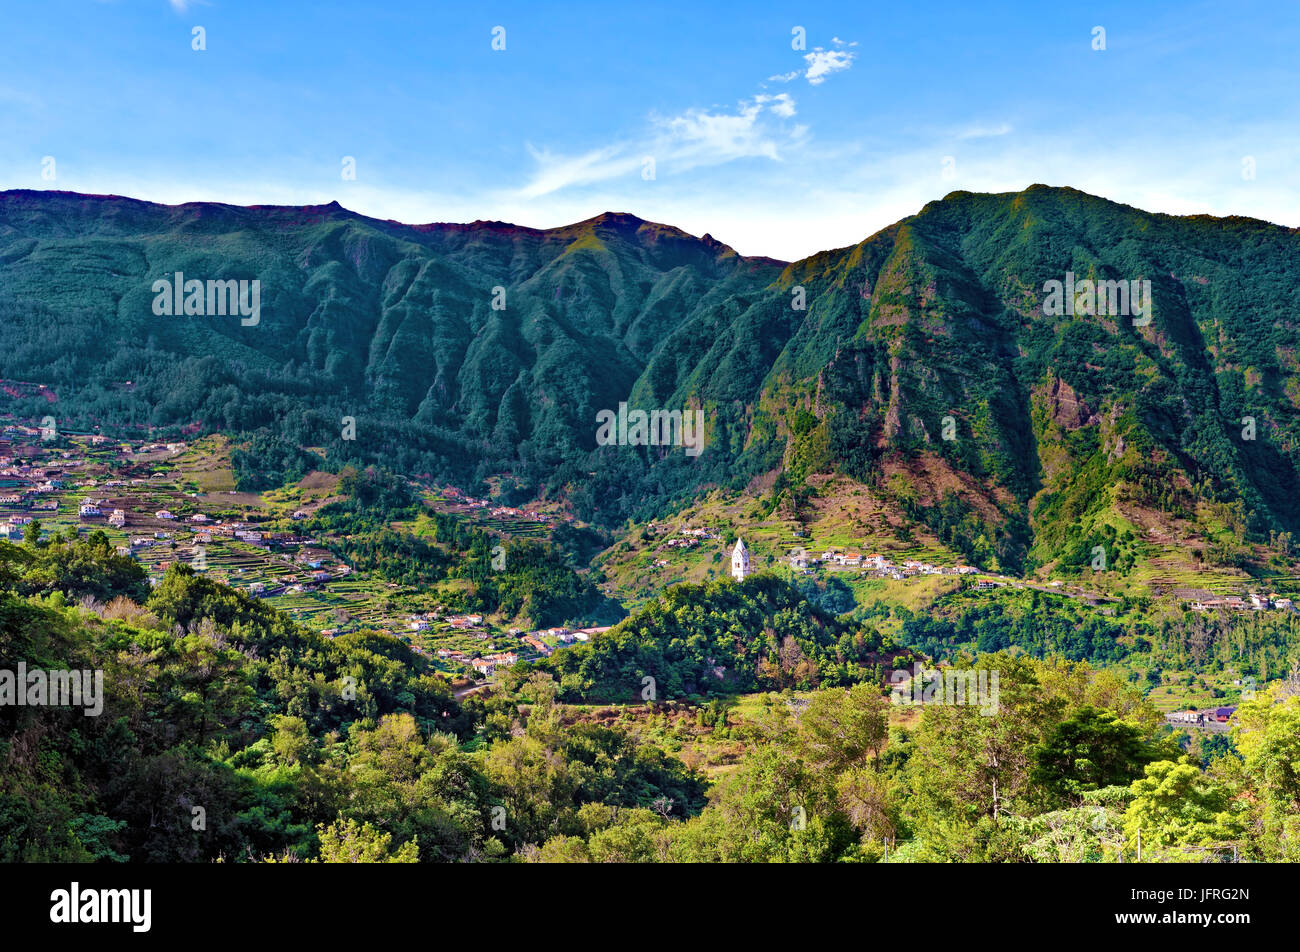 A distant view of a church steeple nestling in the hilly landscape of Madeira - Stock Image